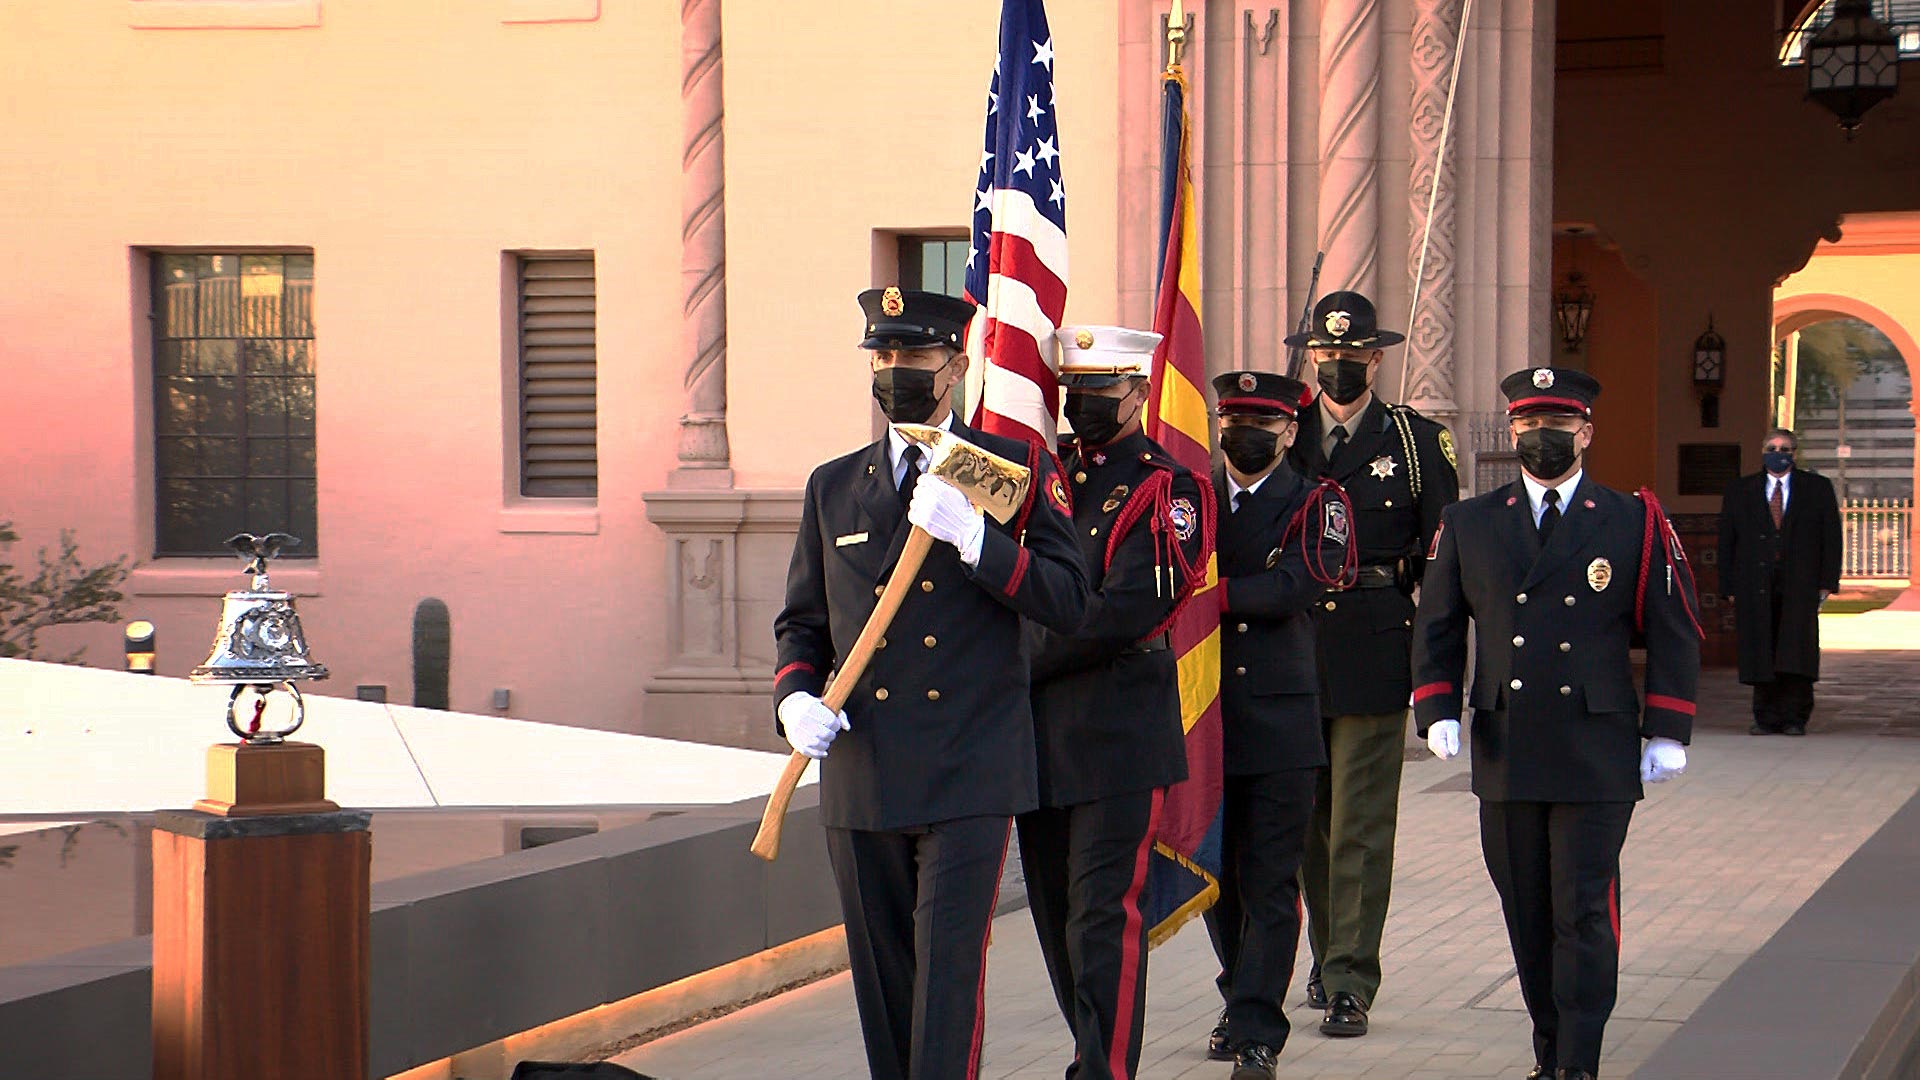 An honor guard delivers the Arizona and United States flags into a dedication ceremony for the January 8th memorial at the Historic County Courthouse in downtown Tucson on Jan. 8, 2021. The memorial, called Embrace, was unveiled on the 10th anniversary of the mass shooting.